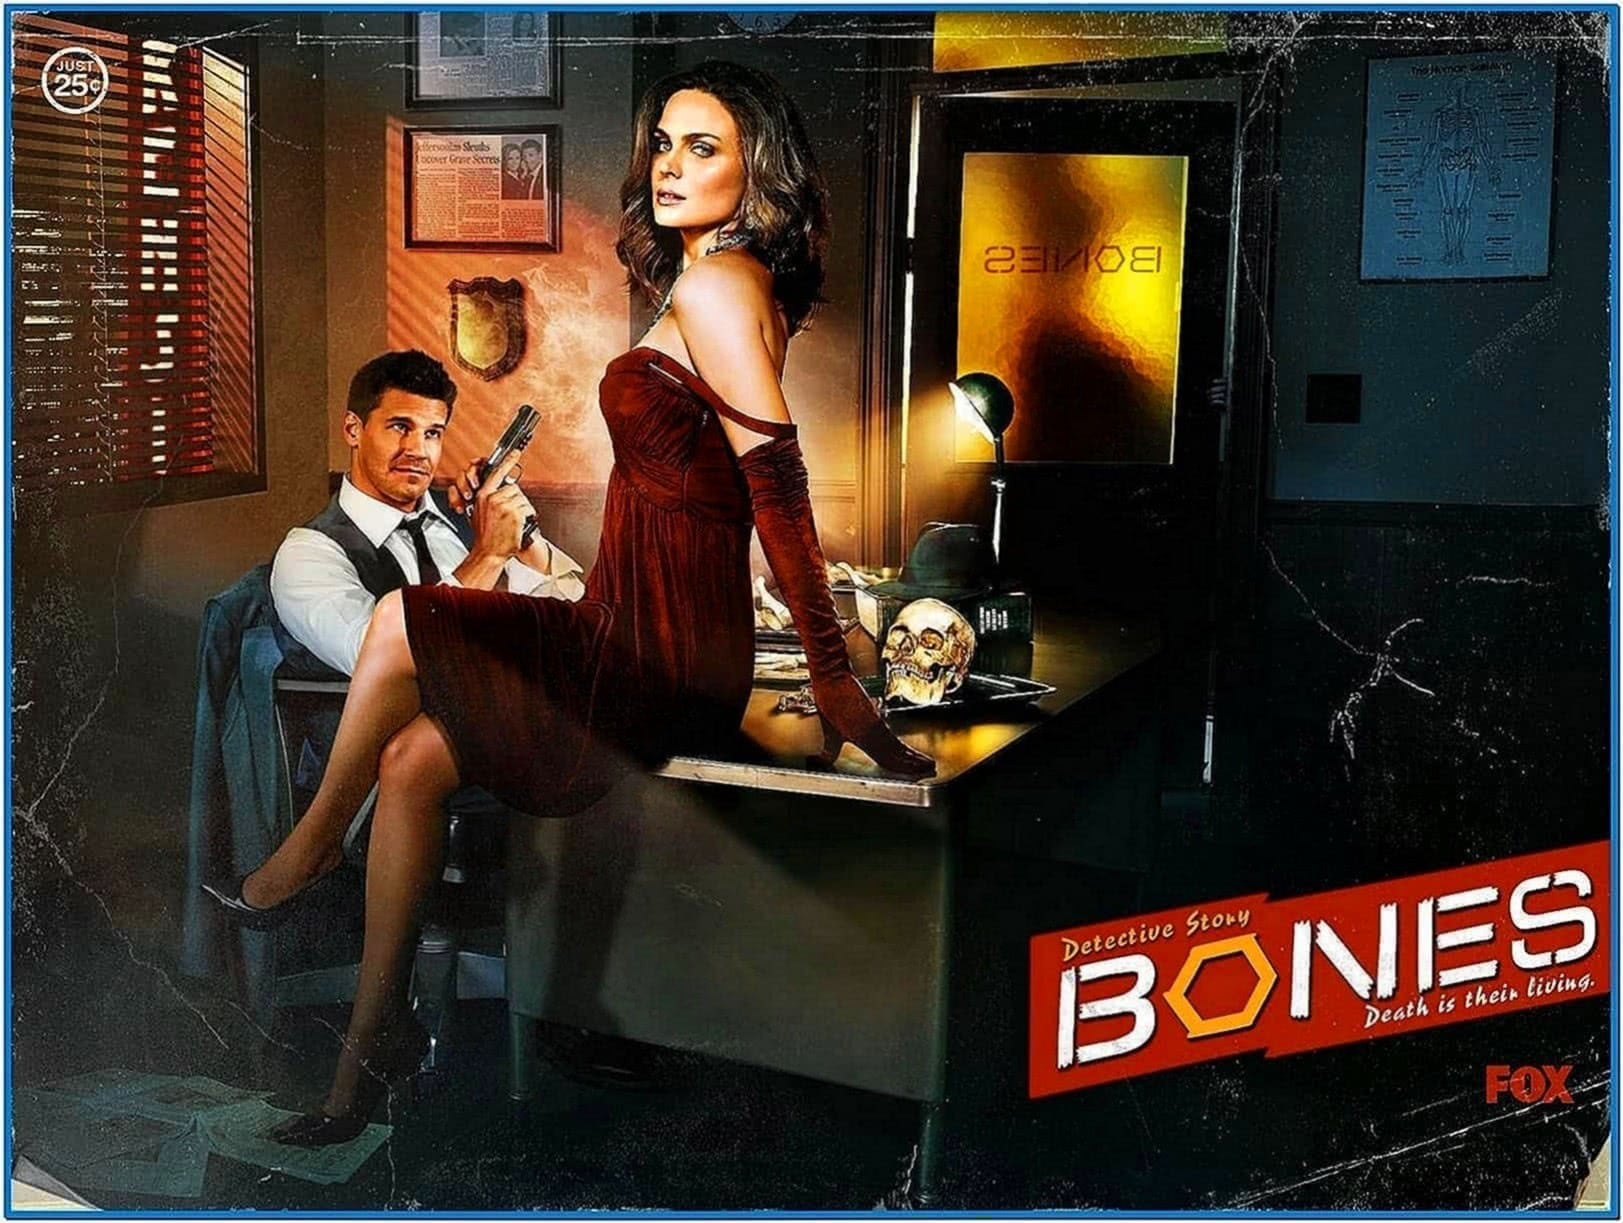 Bones TV Show Screensaver